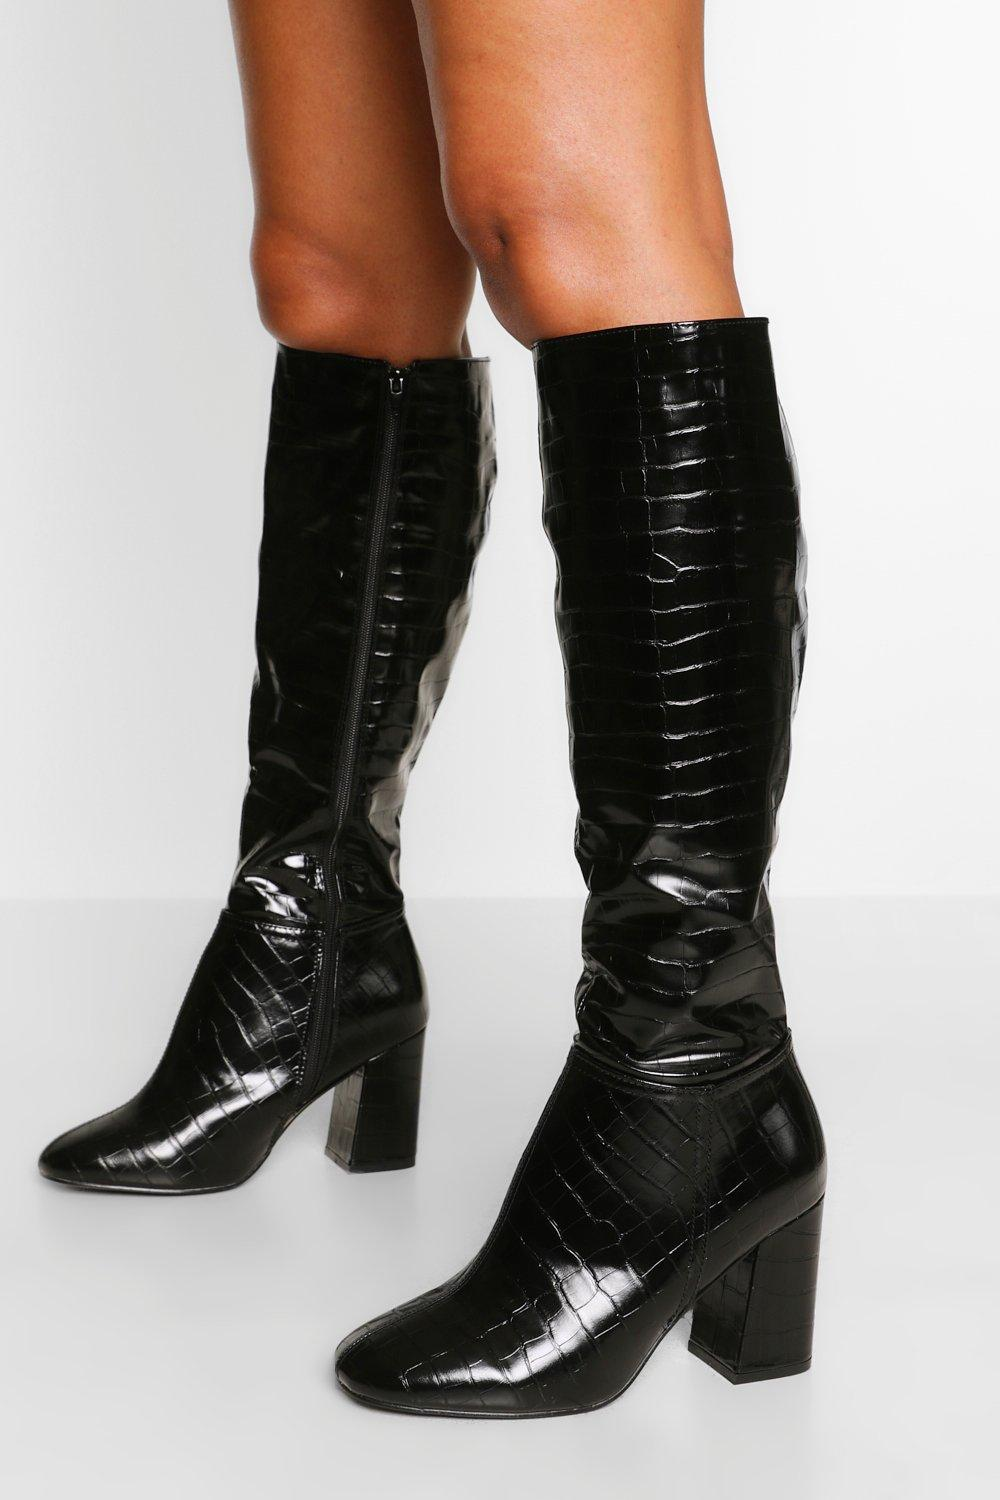 70s Shoes, Platforms, Boots, Heels | 1970s Shoes Womens Wide Fit Block Heel Knee Boot - Black - 10 $80.00 AT vintagedancer.com